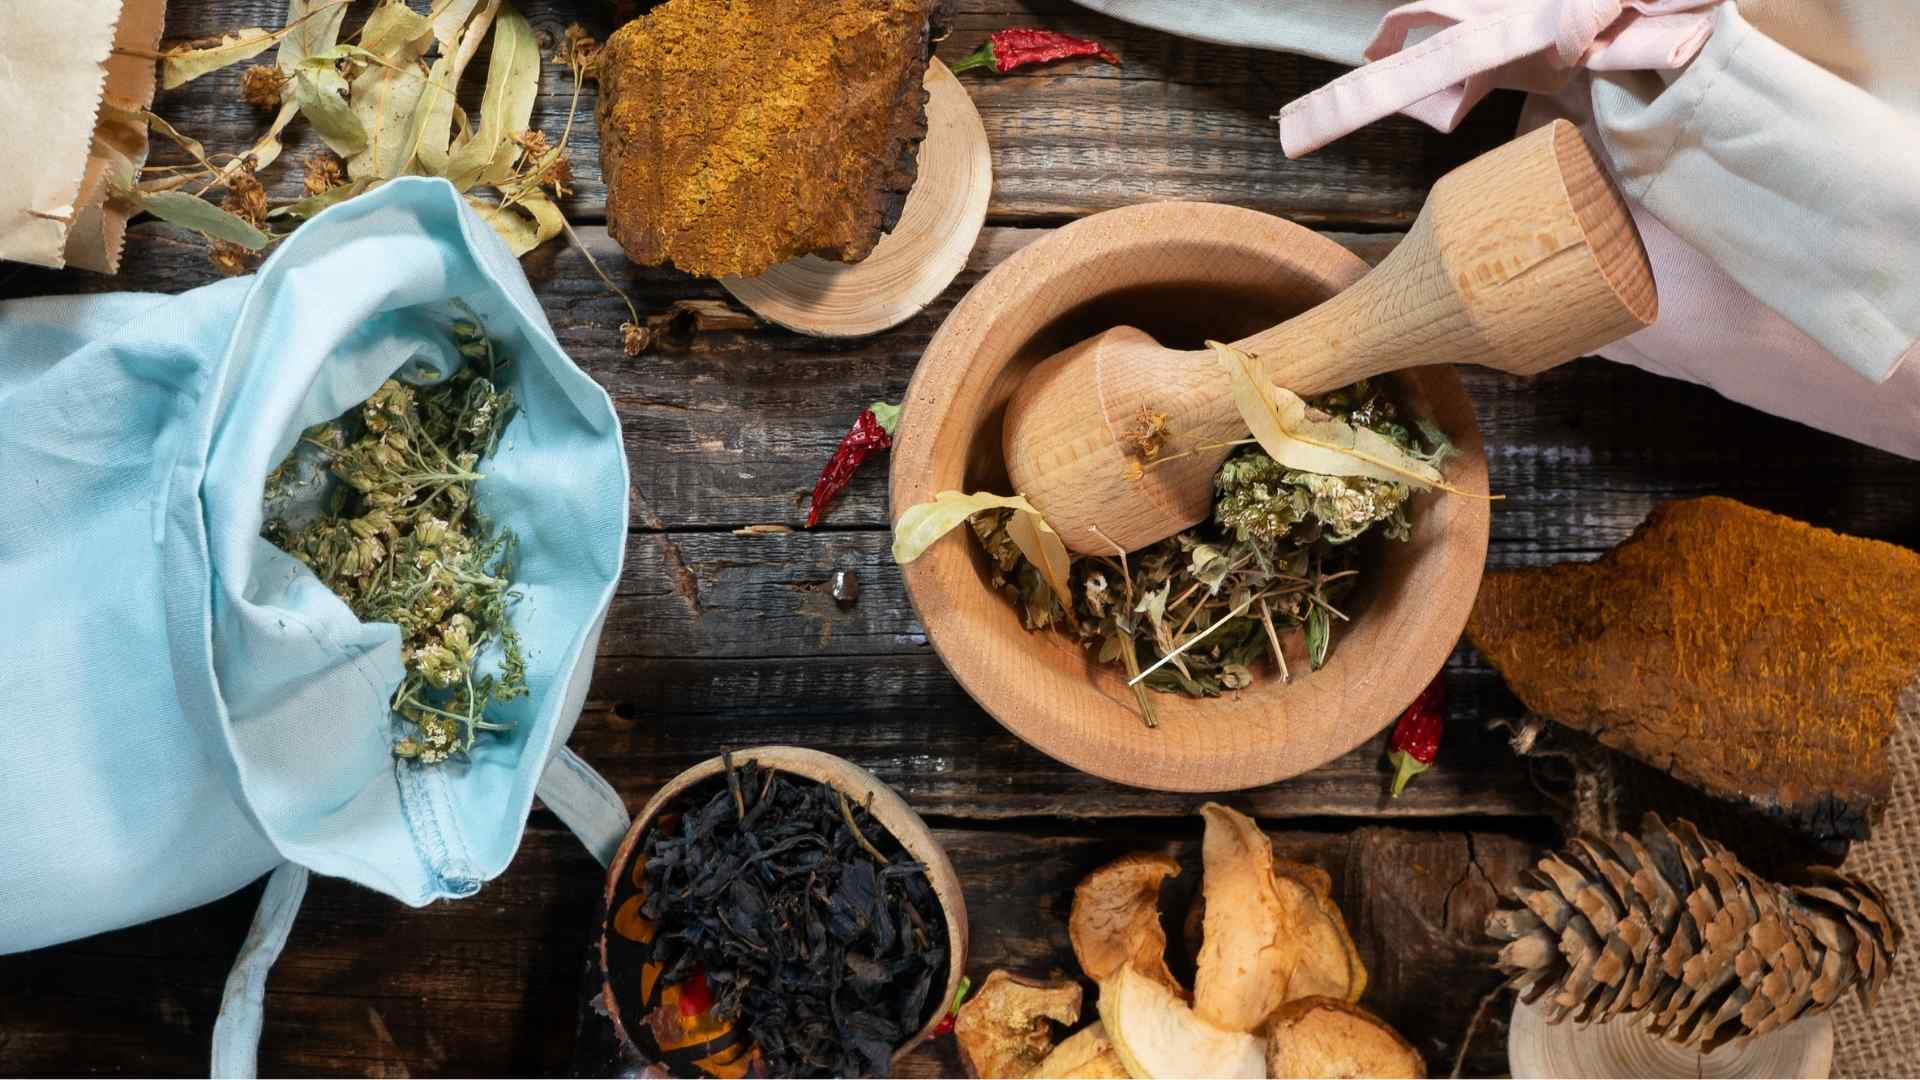 The adaption of traditional medicine in industrialized countries is termed as CAM